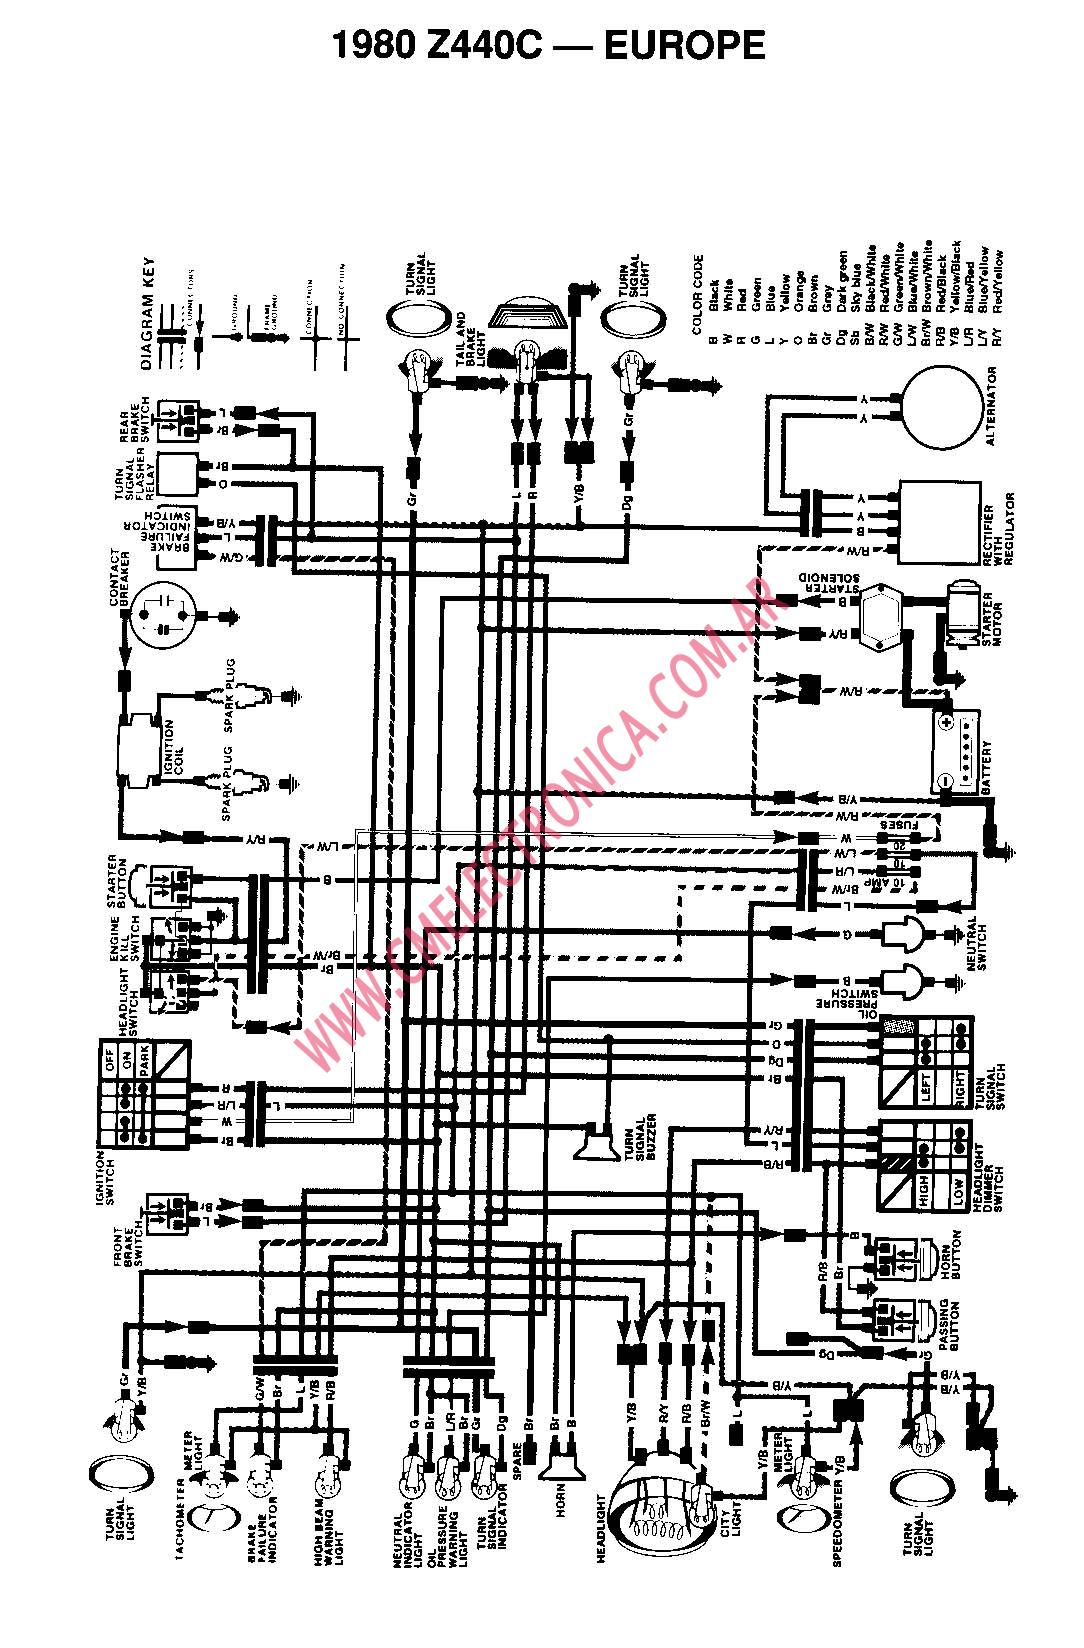 hight resolution of klf 300 wiring diagram wiring diagram todays rh 2 17 8 1813weddingbarn com kawasaki prairie 300 wiring diagram 1986 kawasaki bayou 300 wiring diagram